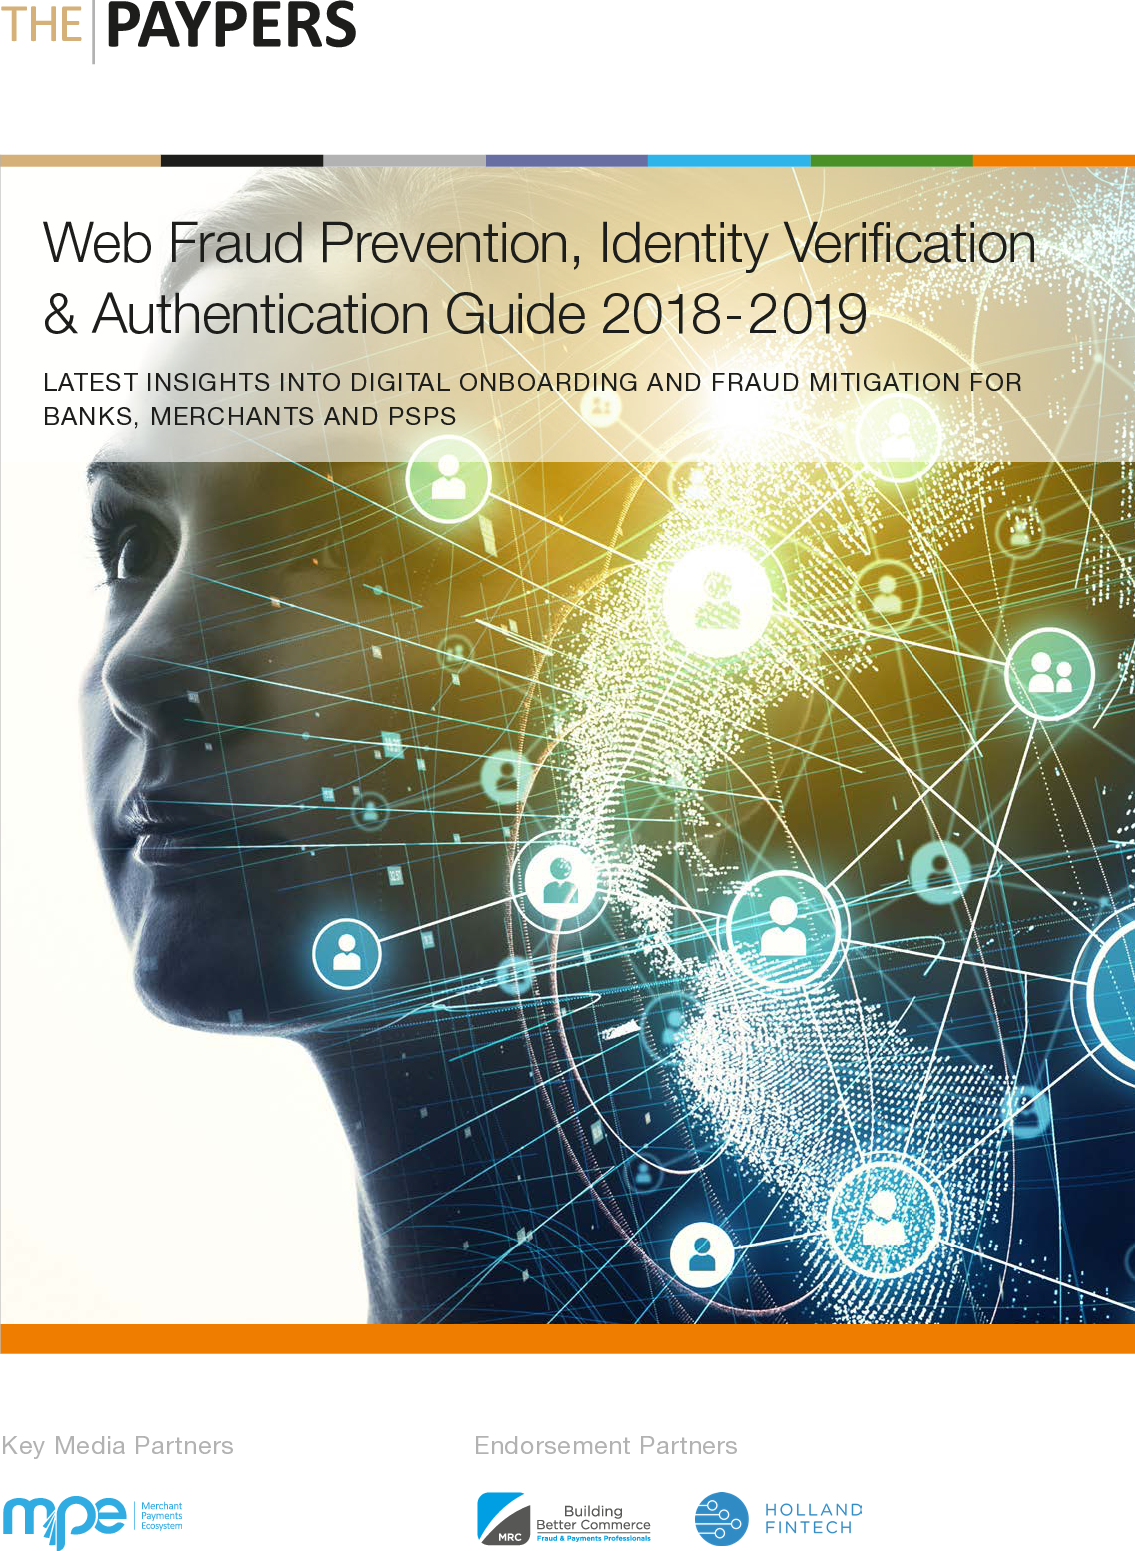 Web Fraud Prevention, Identity Verification & Authentication Guide